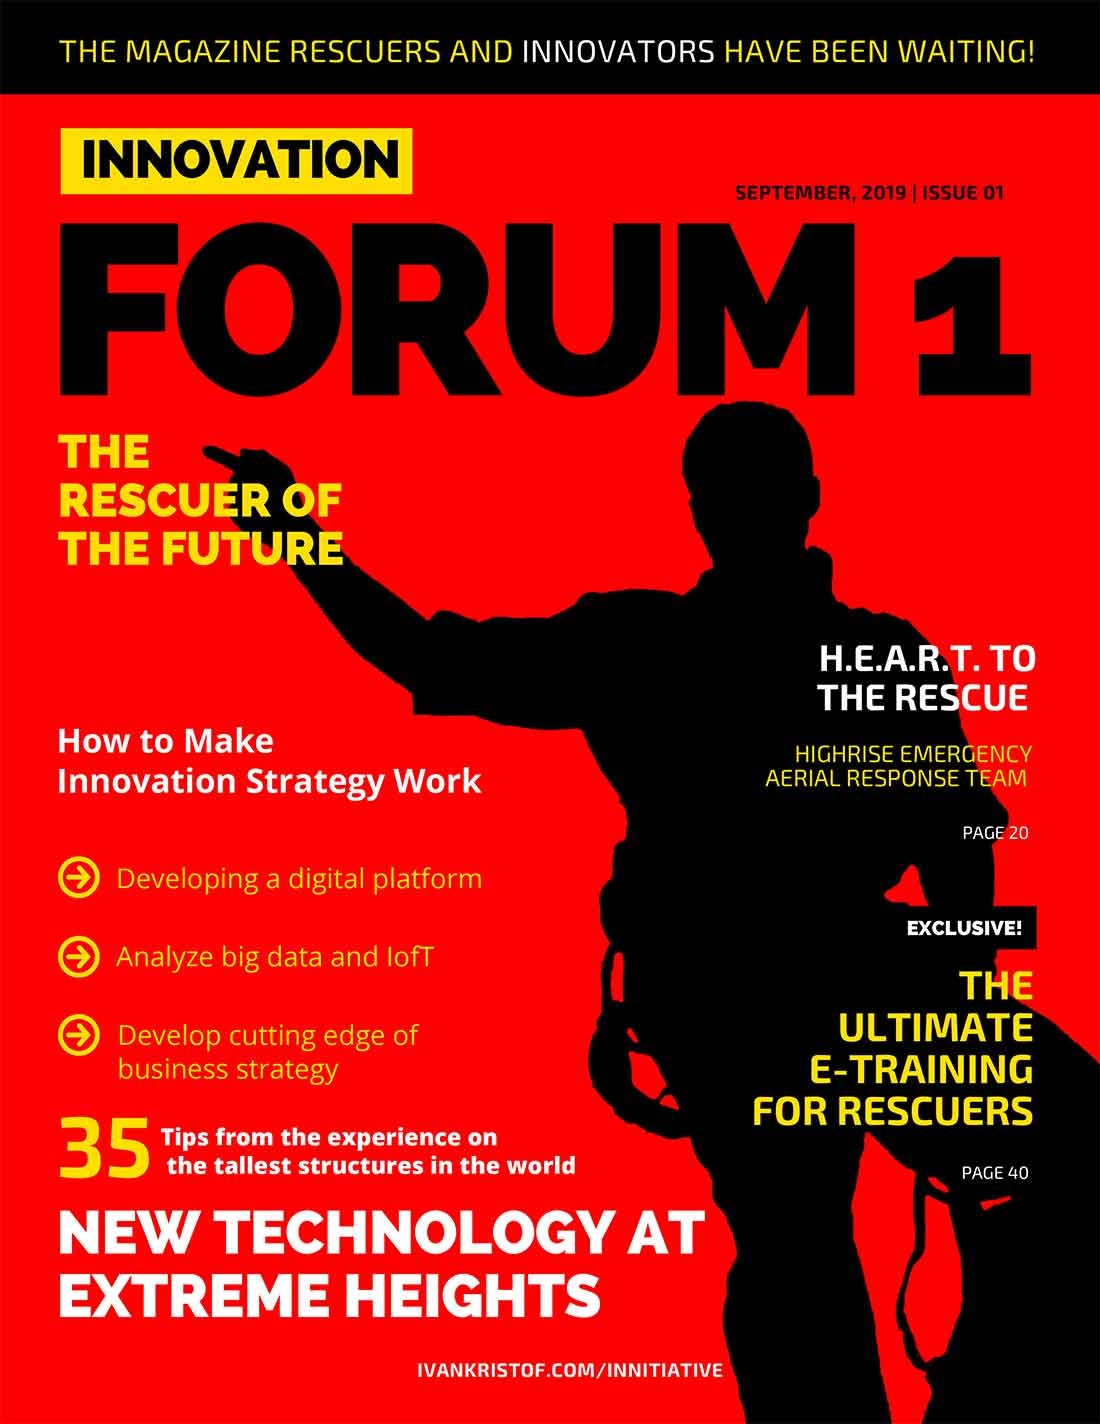 The Innovation Forum Magazine